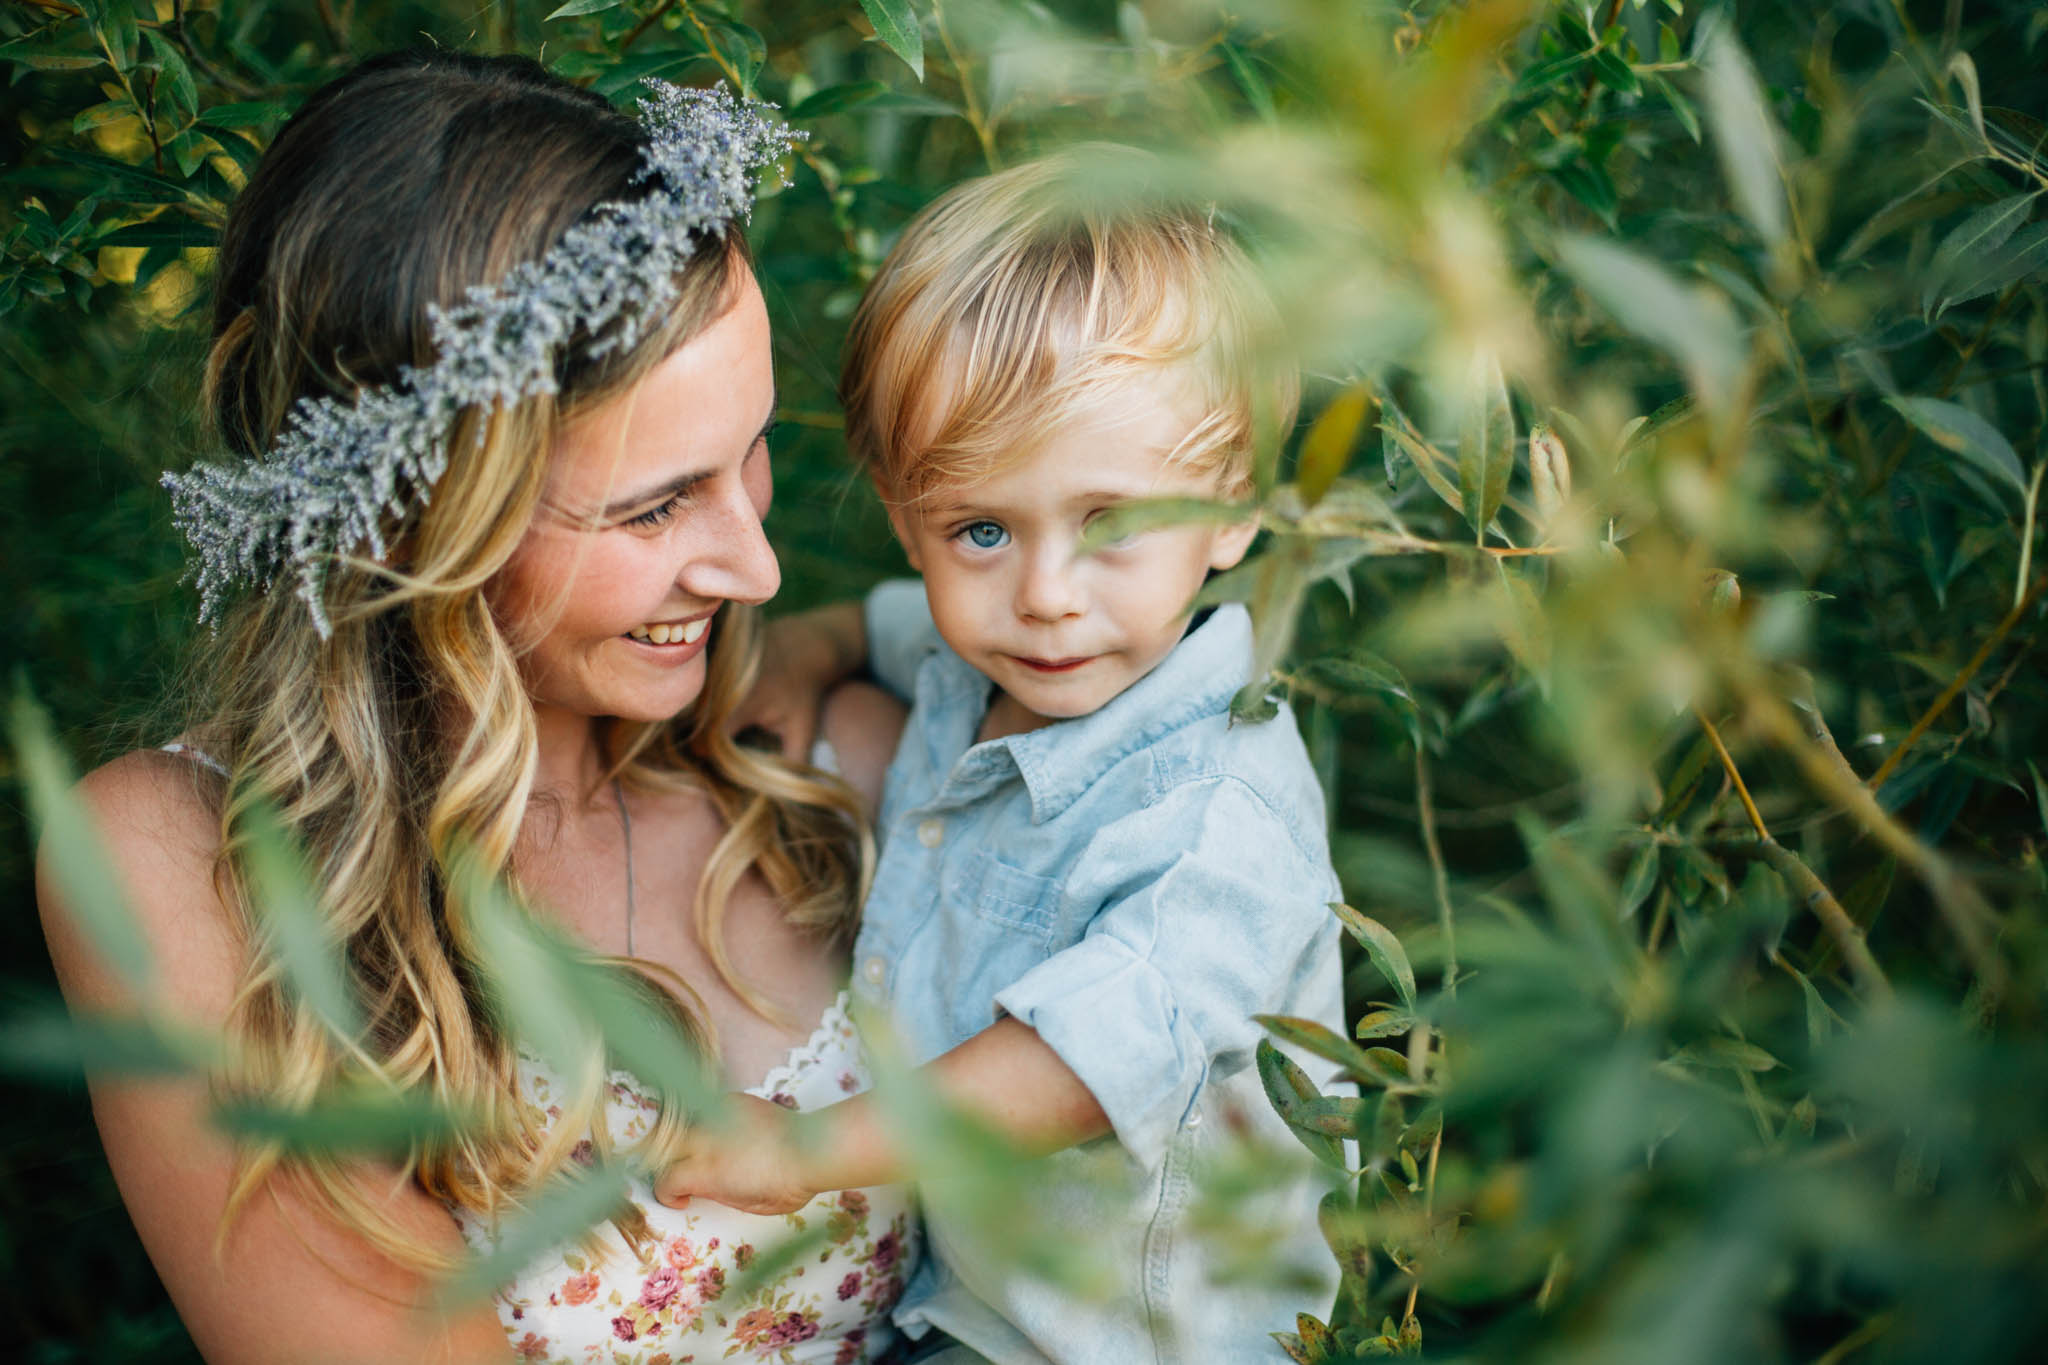 Kitsilano Jericho Beach Family Photographer - Emmy Lou Virginia Photography-9.jpg